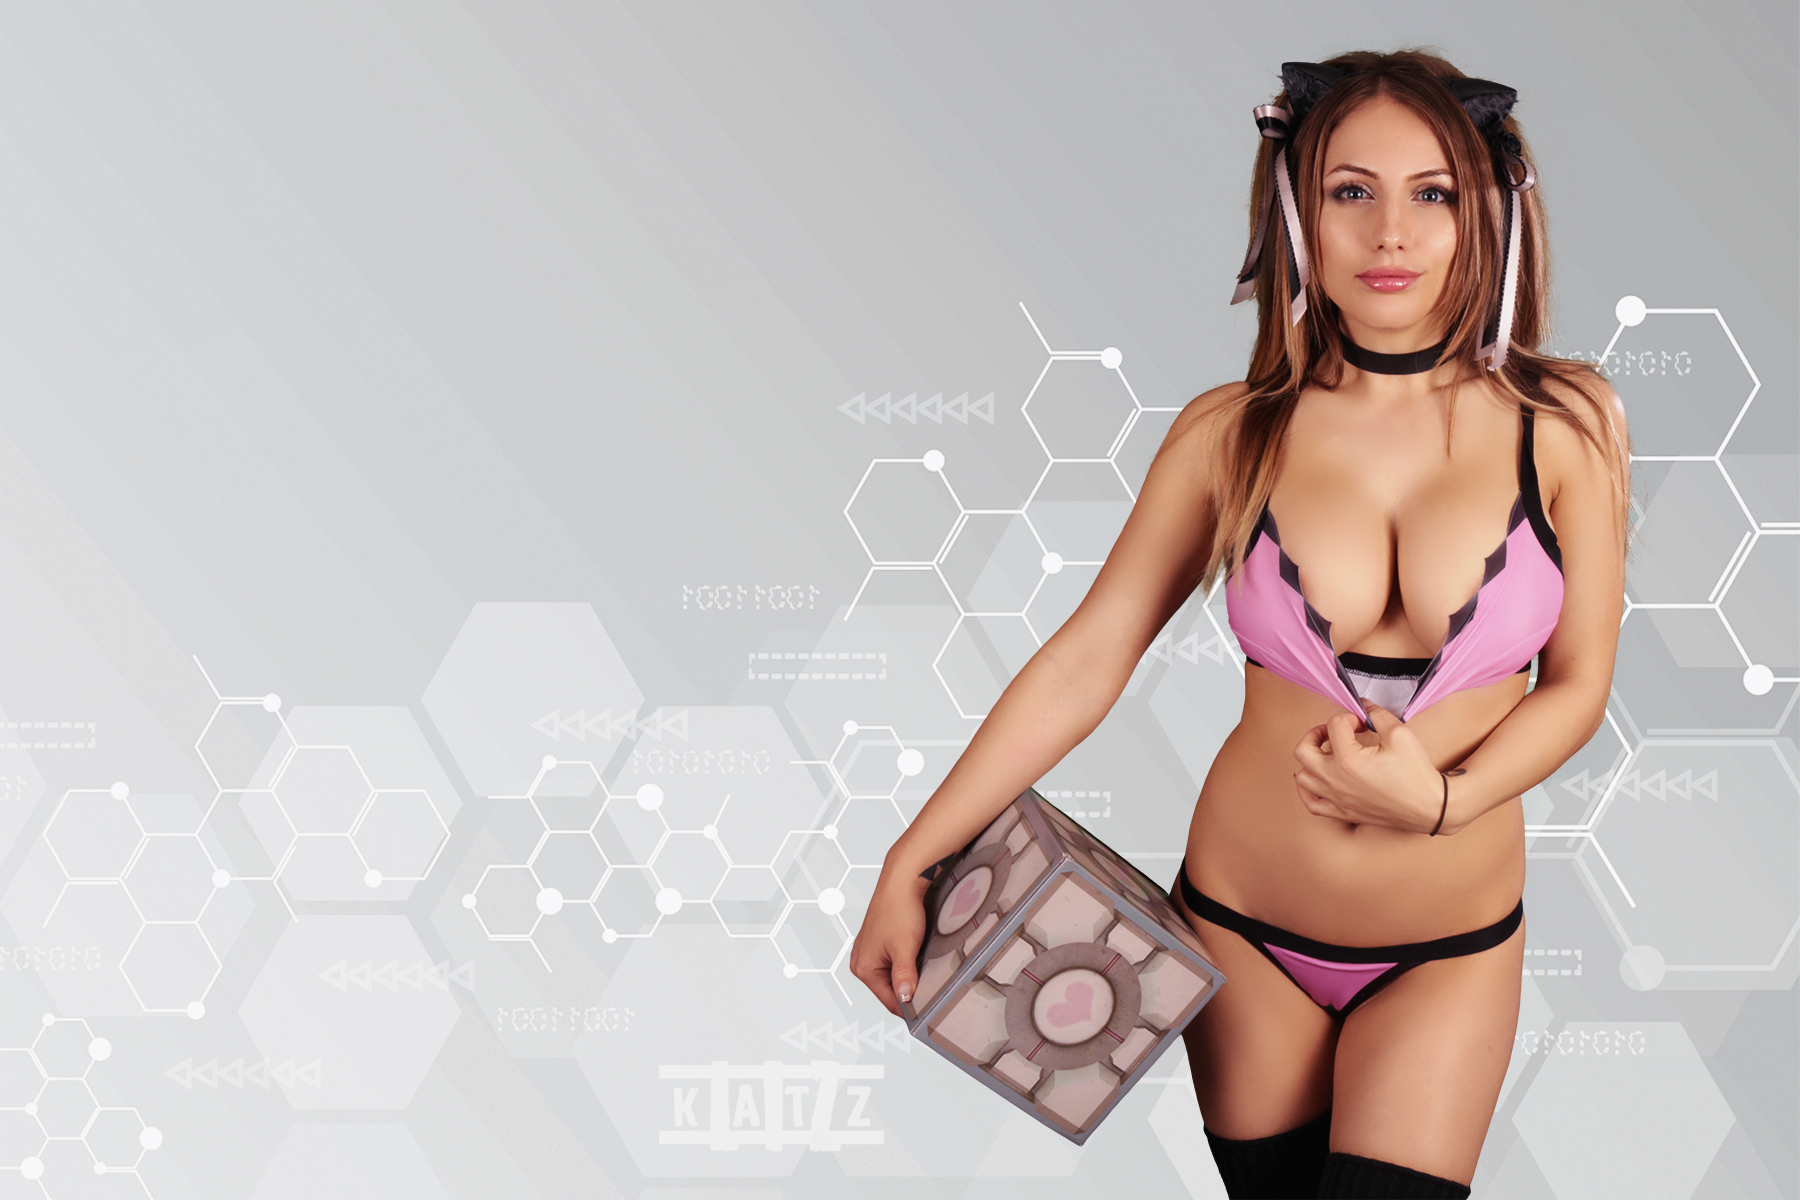 Naked girl companion cube panties consider, that